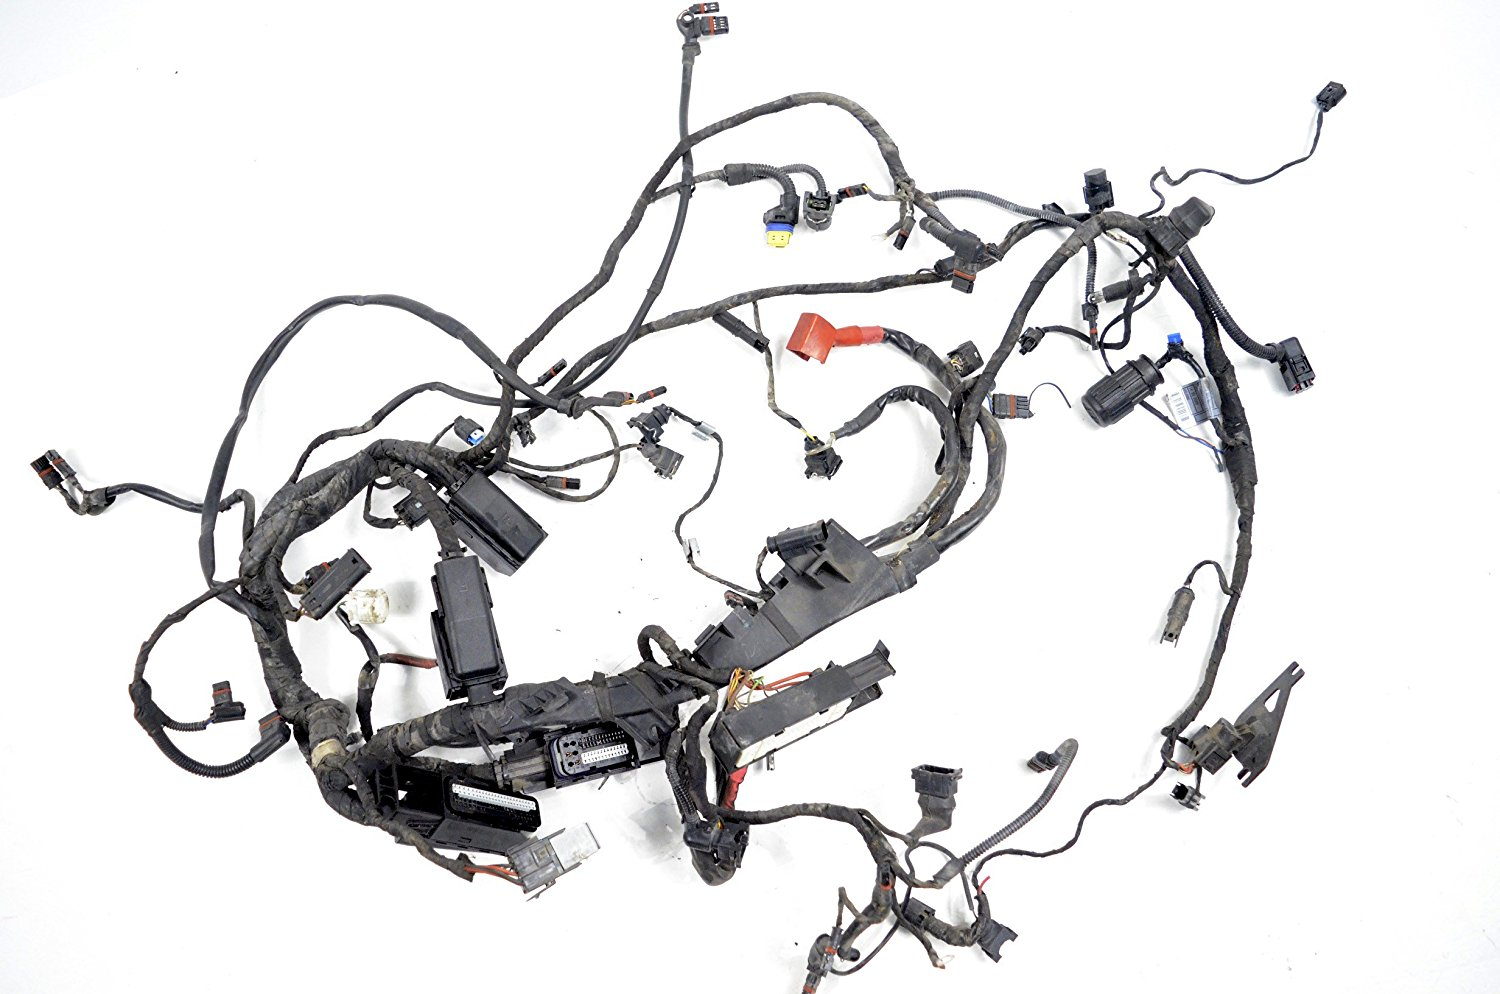 Sensational Buy 2009 Bmw R1200Gs Main Wiring Harness Cable Loom Gen 2 Abs Wiring Cloud Hisonuggs Outletorg